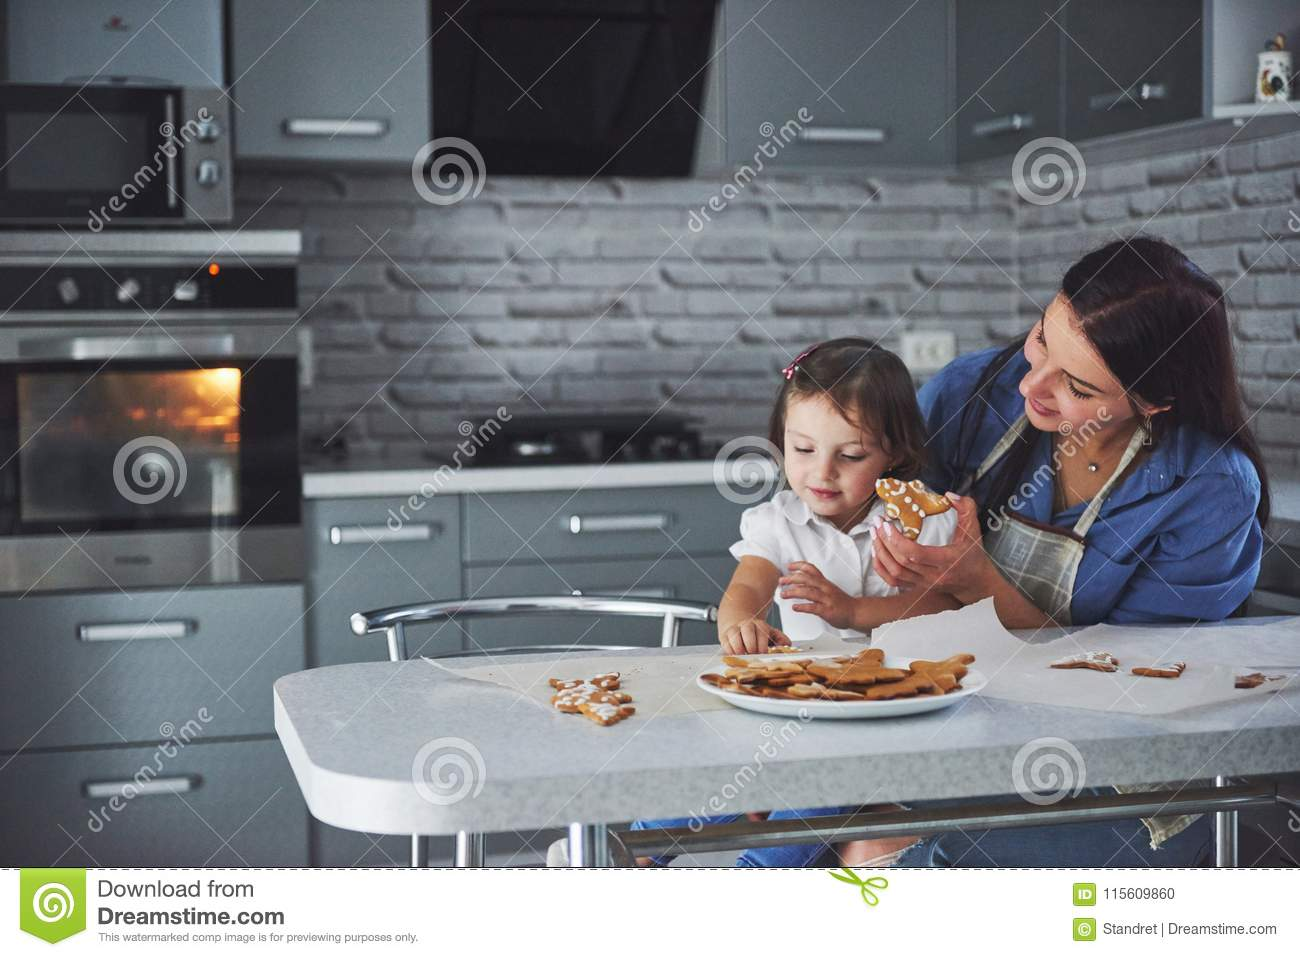 Happy family in the kitchen. Holiday food concept. Mother and daughter decorate cookies. Happy family in making homemade